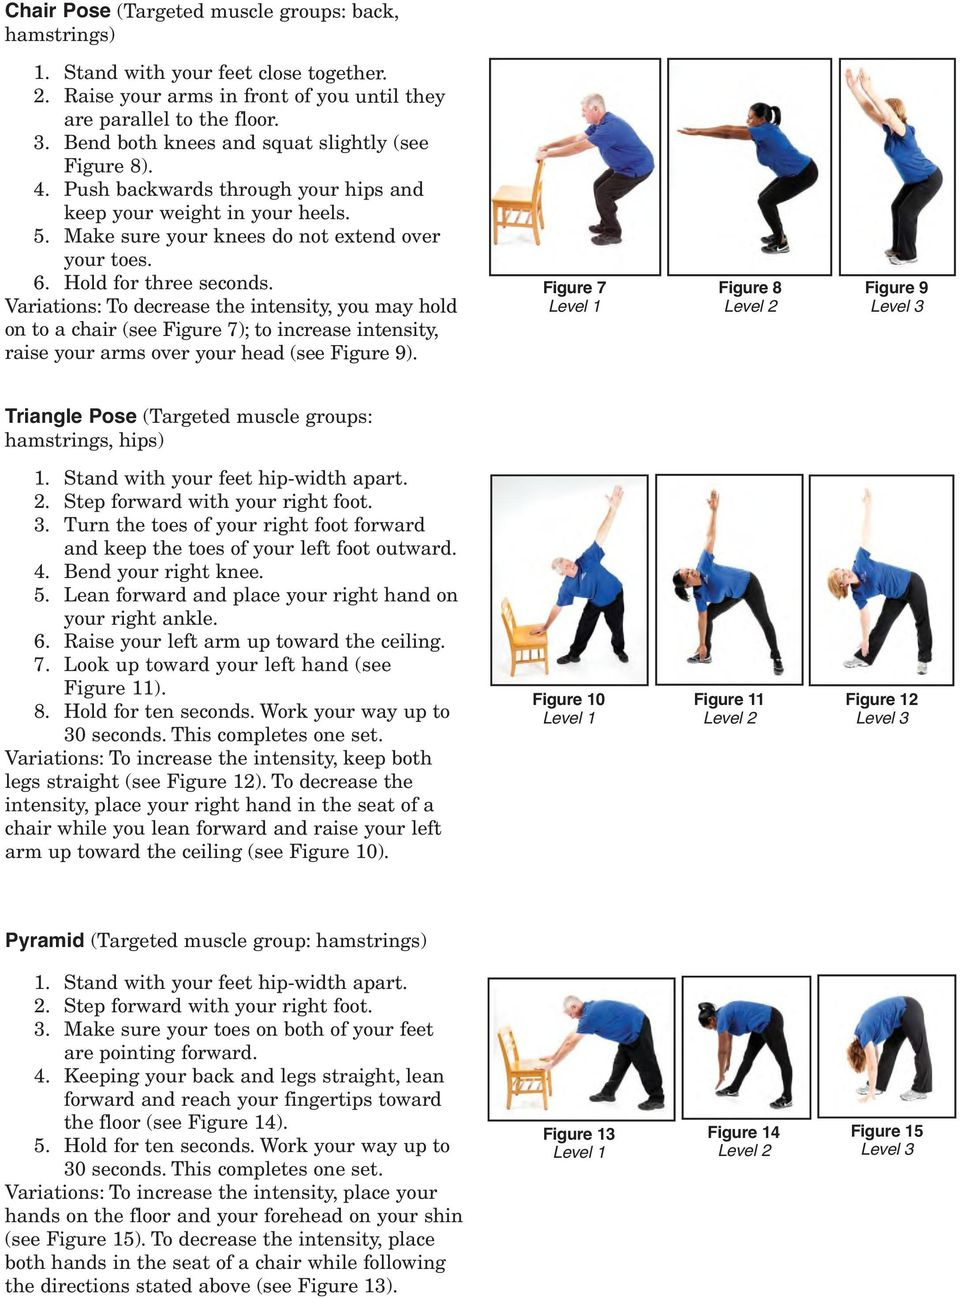 Hold for three seconds. Variations: To decrease the intensity, you may hold on to a chair (see Figure 7); to increase inten sity, raise your arms over your head (see Figure 9).